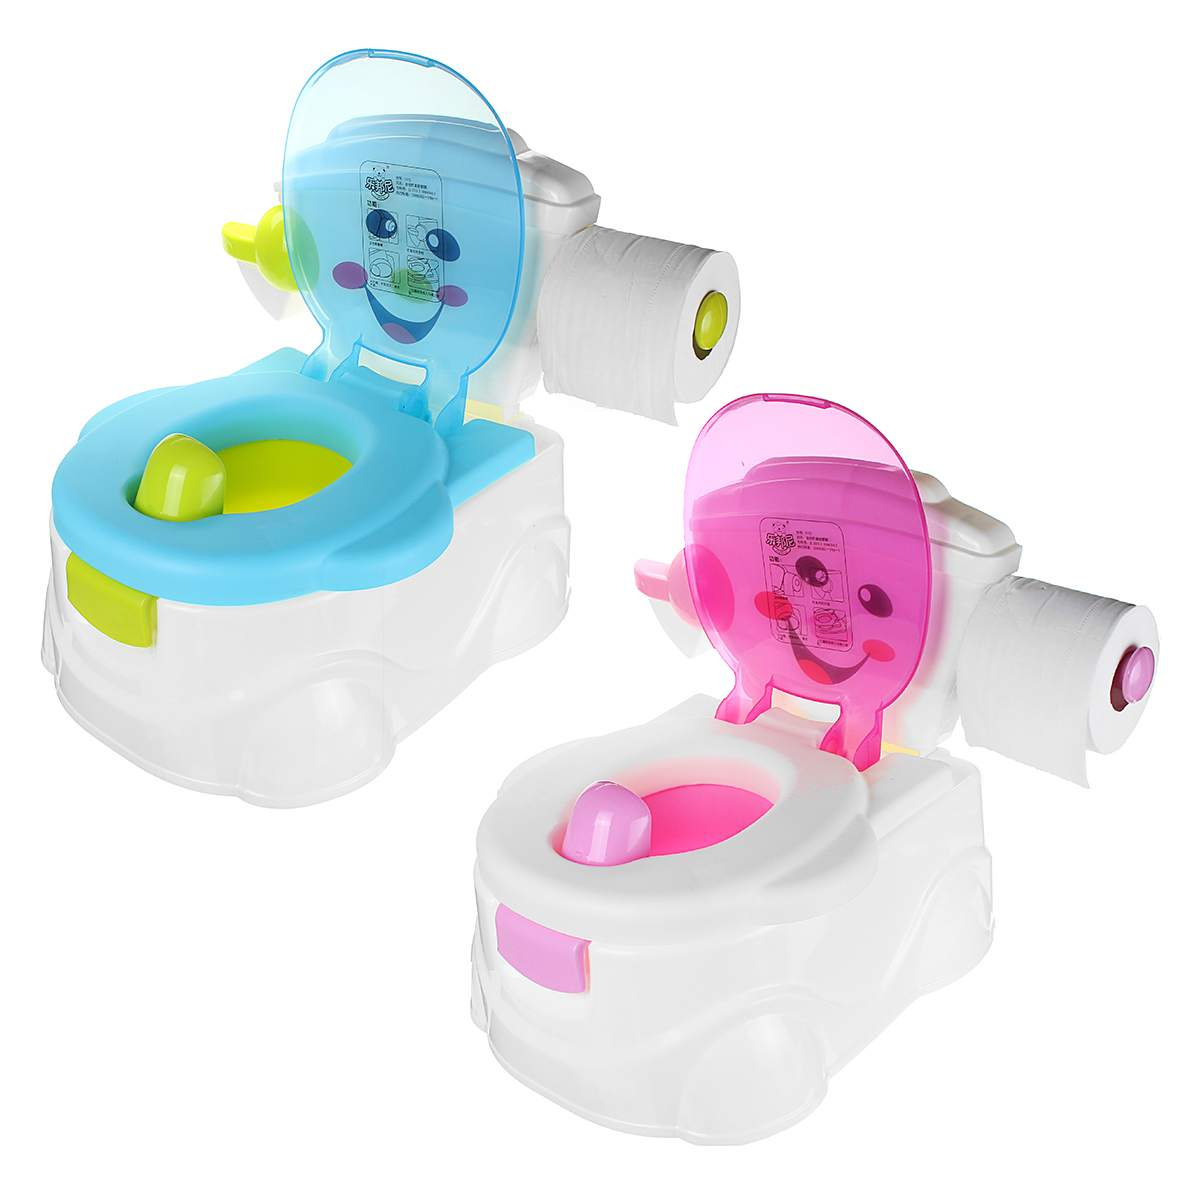 2 In1 Portable Music Kids Baby Toilet Trainer Child Toddler Potties Training Seat Fun Chair for Boys Girls